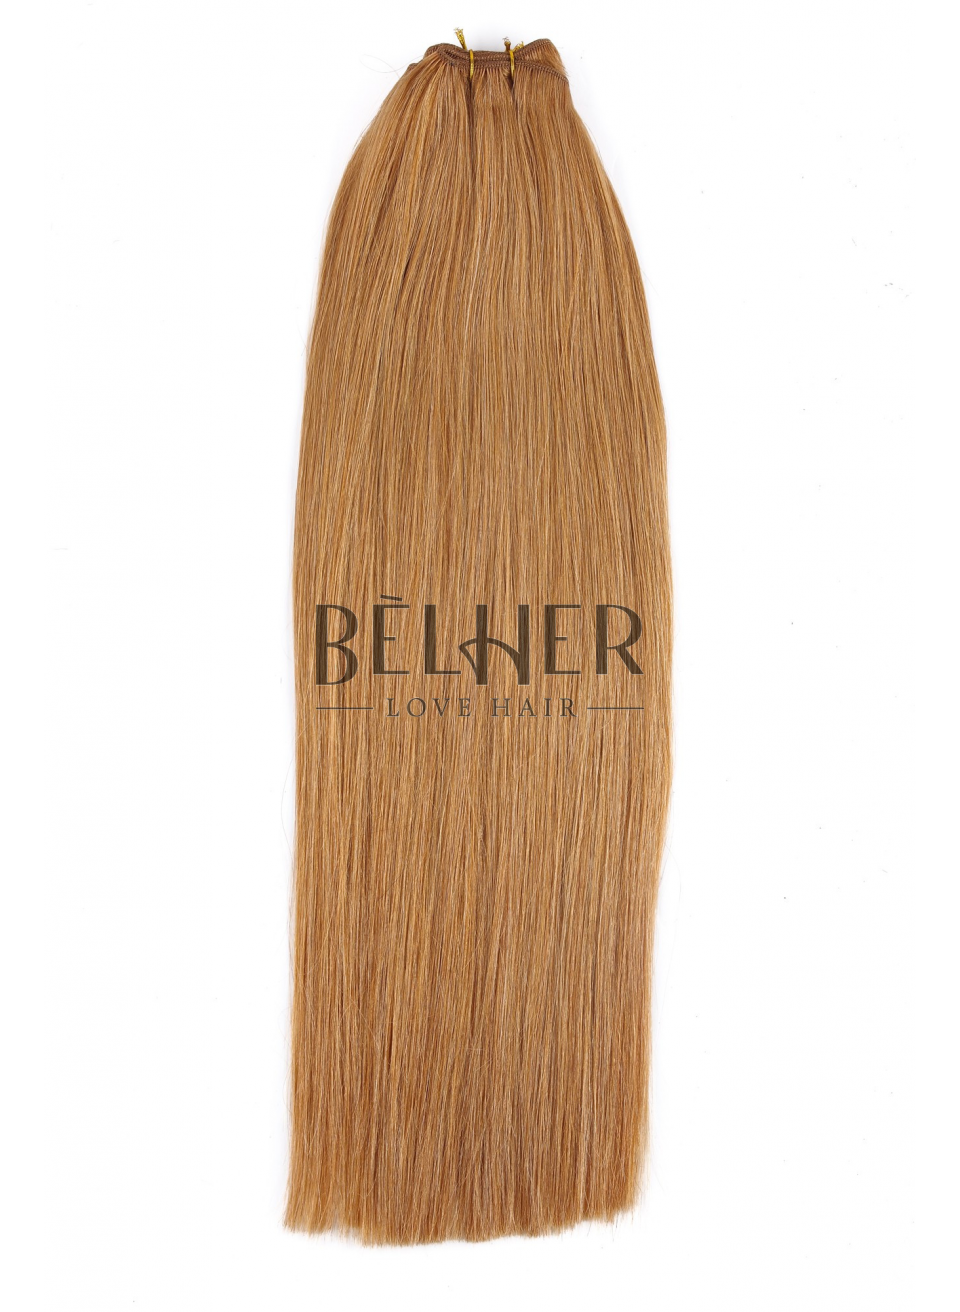 Blond Miere Extensii Cusute Deluxe